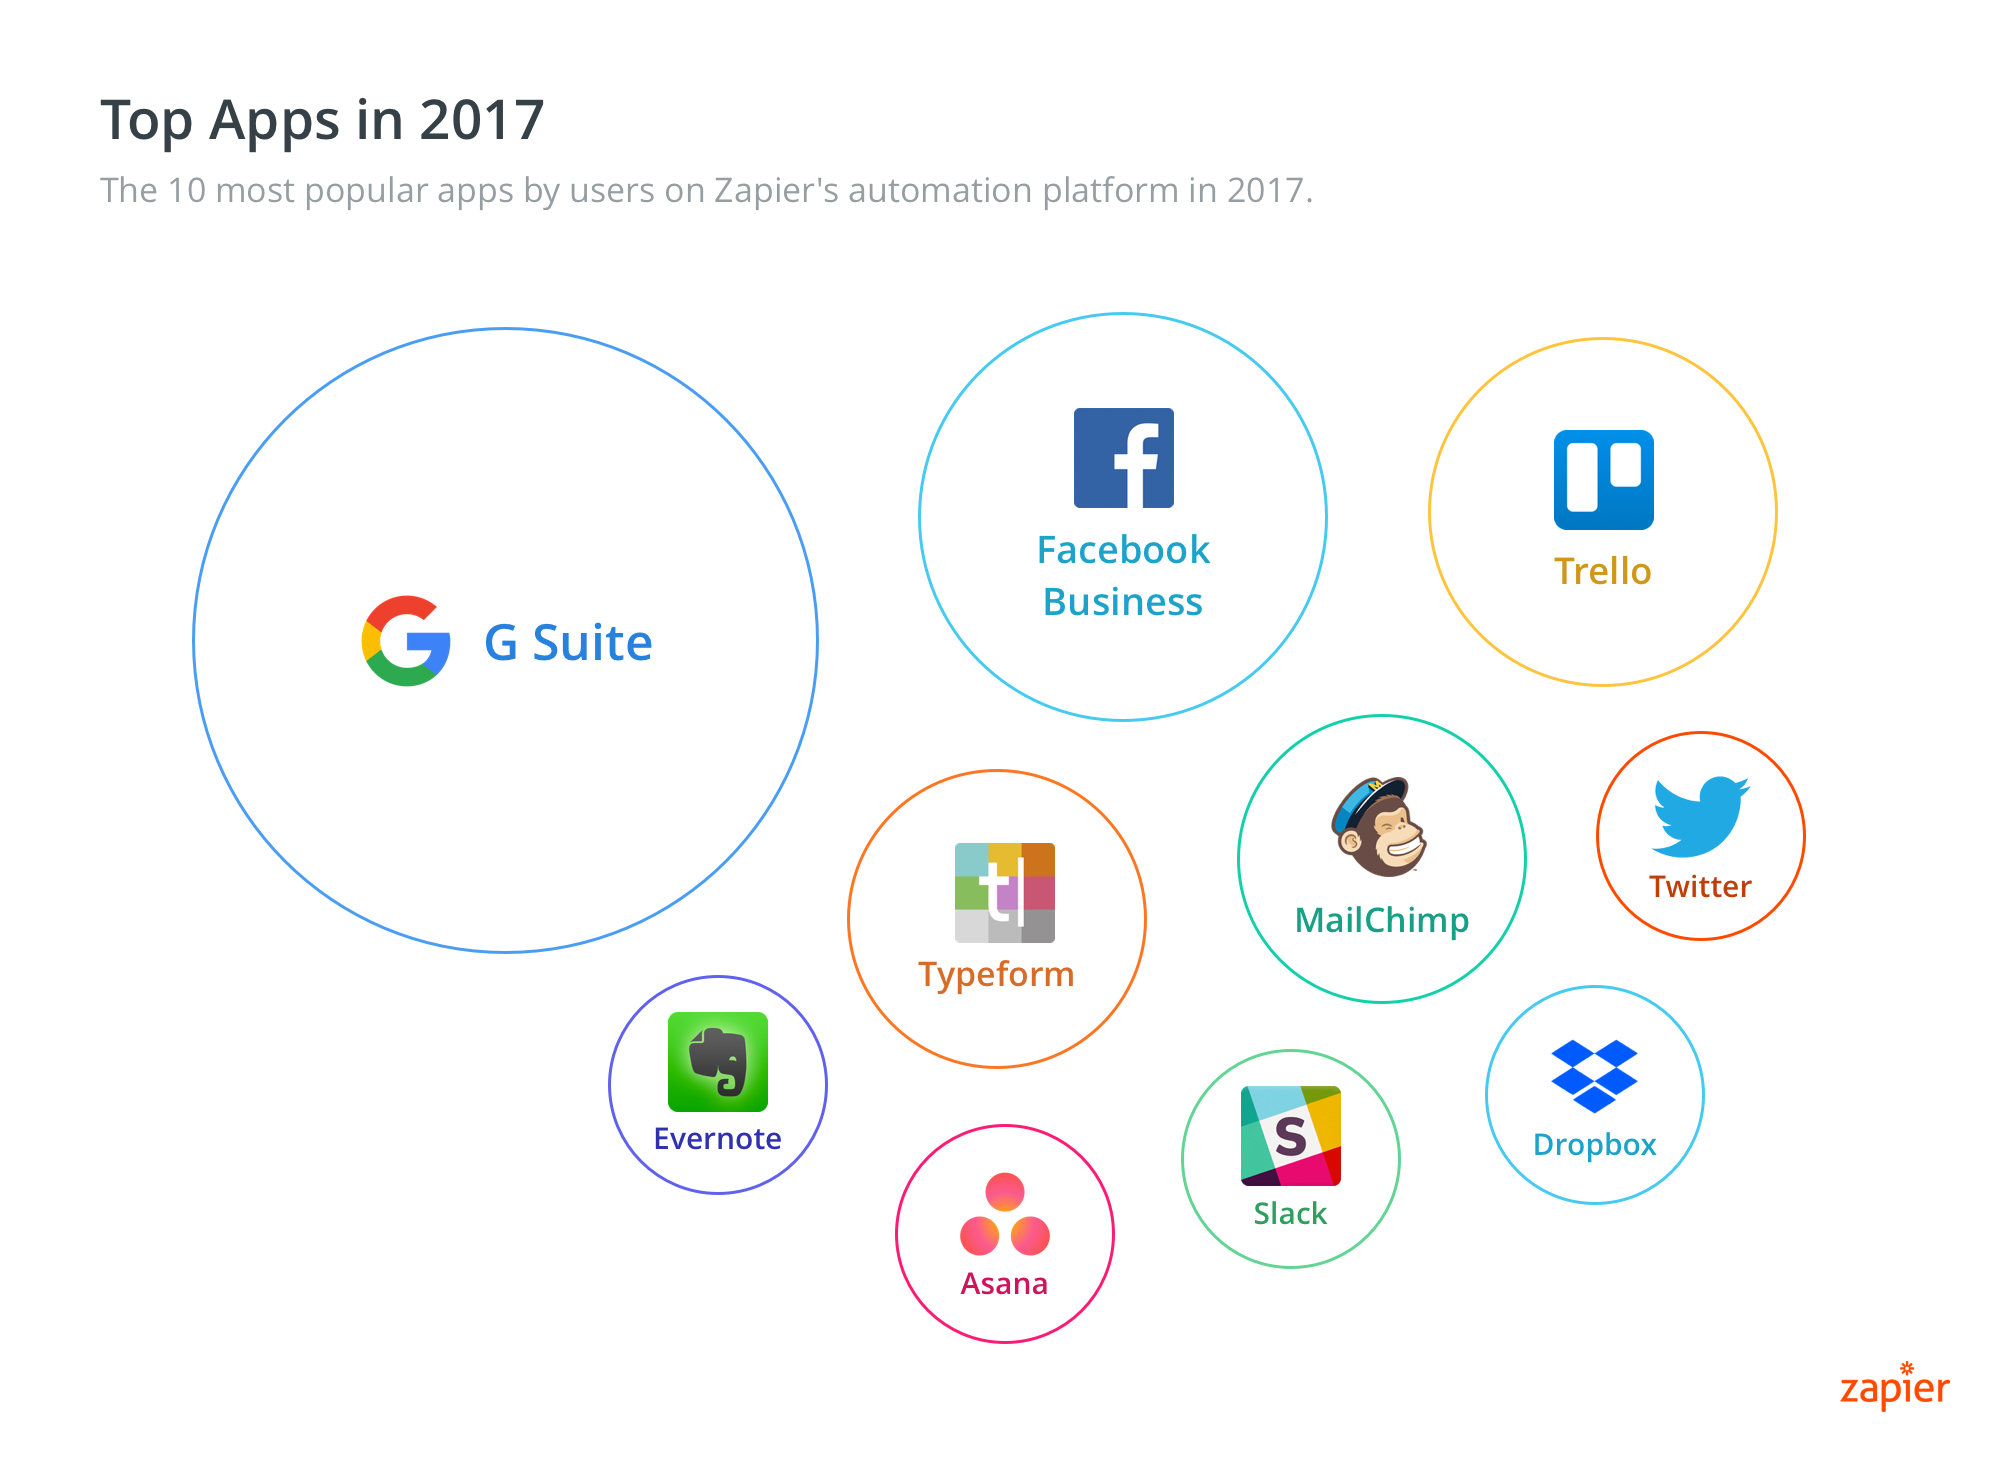 Top Zapier Apps in 2017